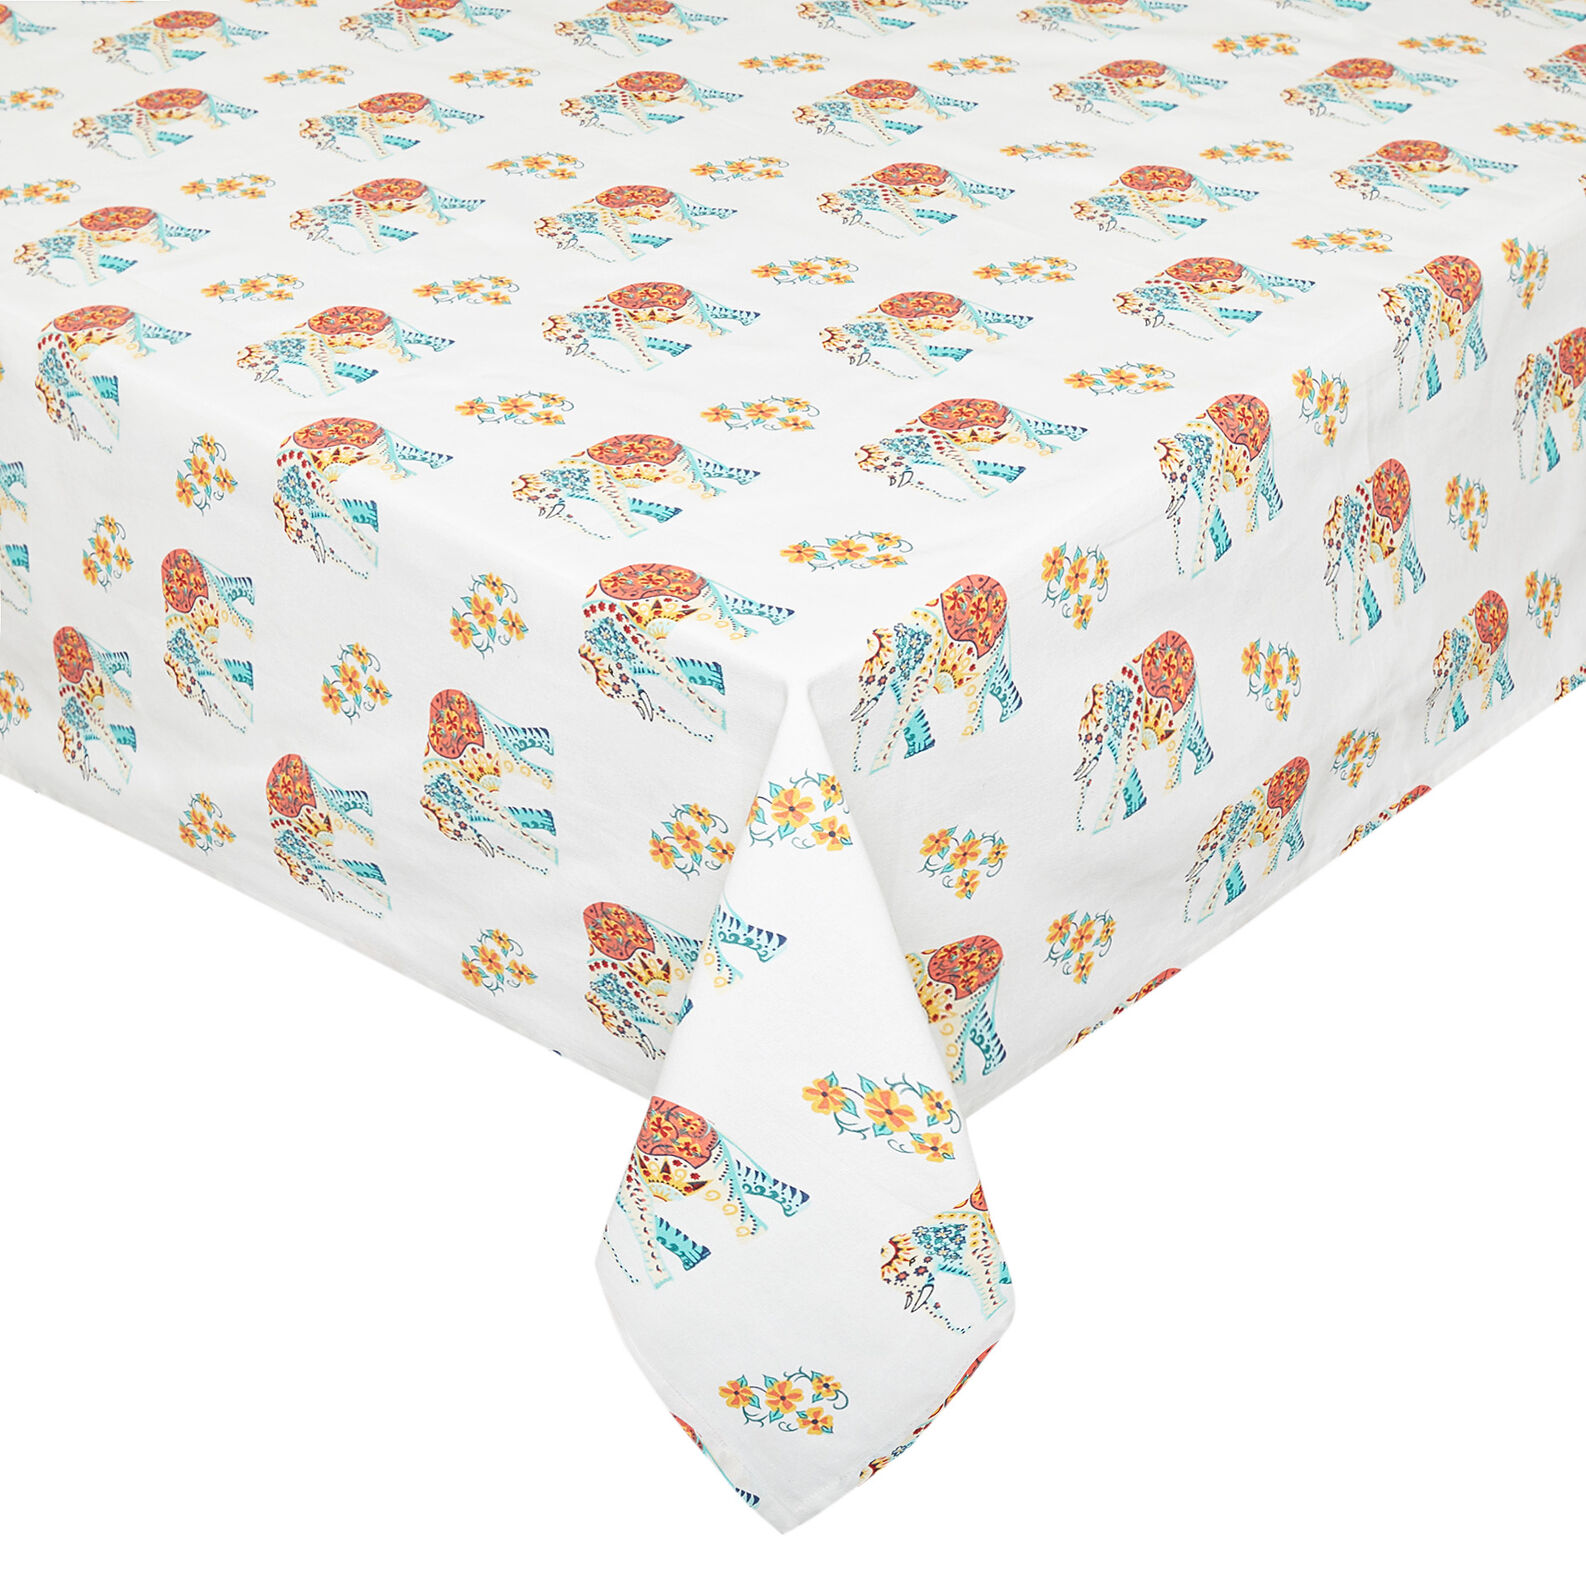 100% cotton tablecloth with elephants print